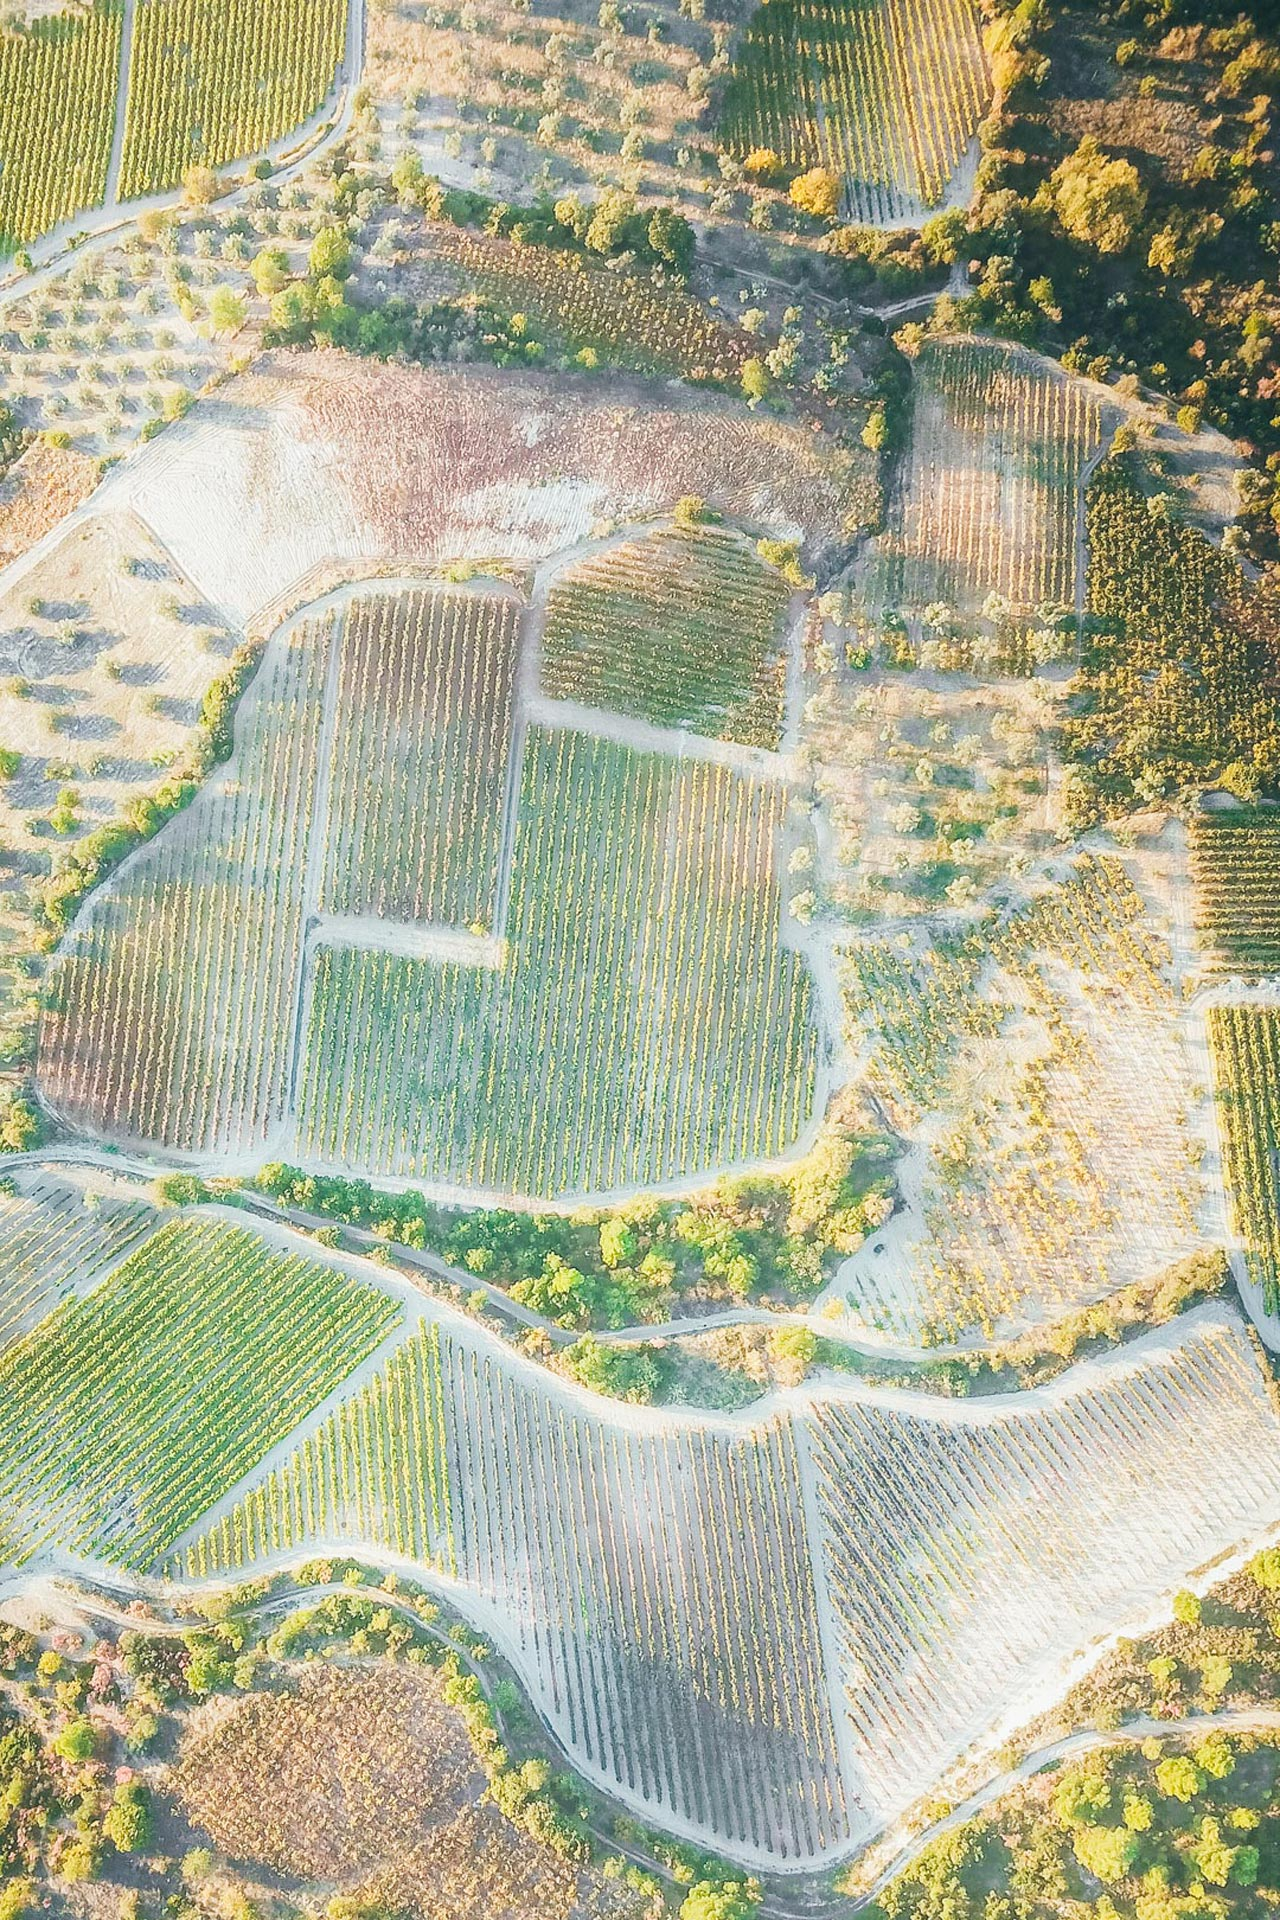 The hillside vineyards of Nemea successfully produce many of Europe's leading grape varieties